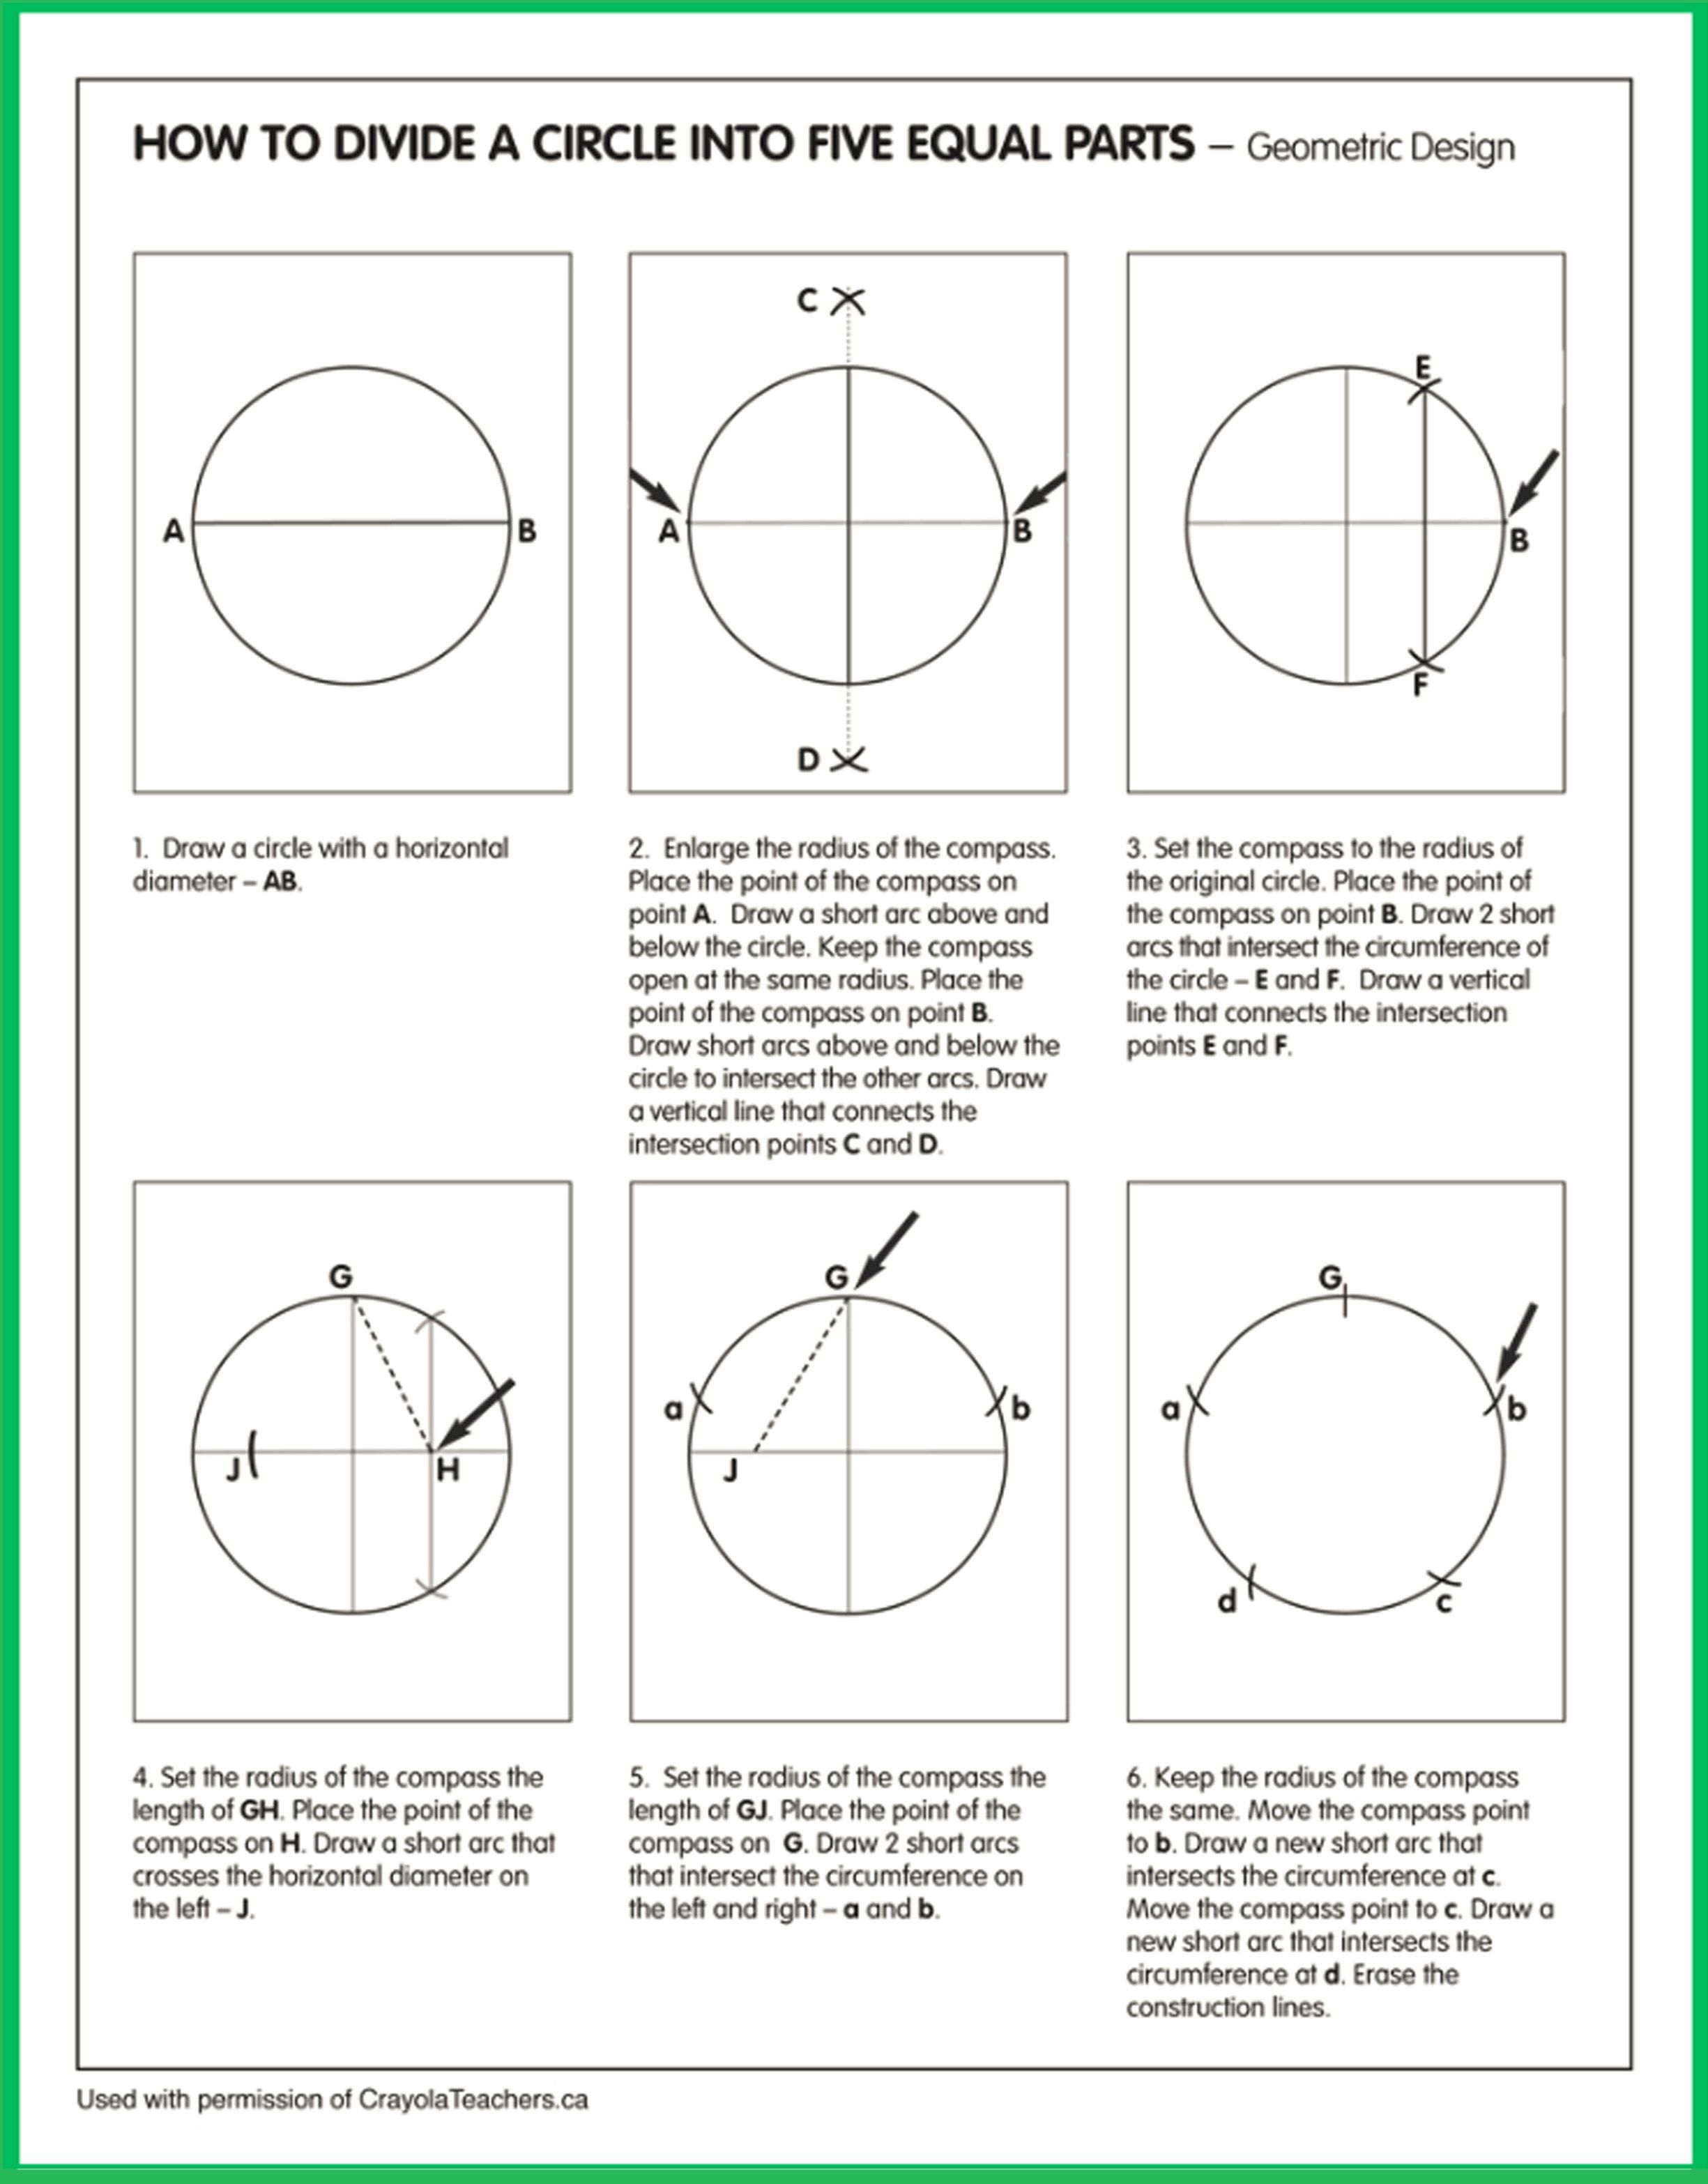 How To Divide A Circle Into 5 Equal Parts Art Worksheets Circle Geometry Geometry Worksheets